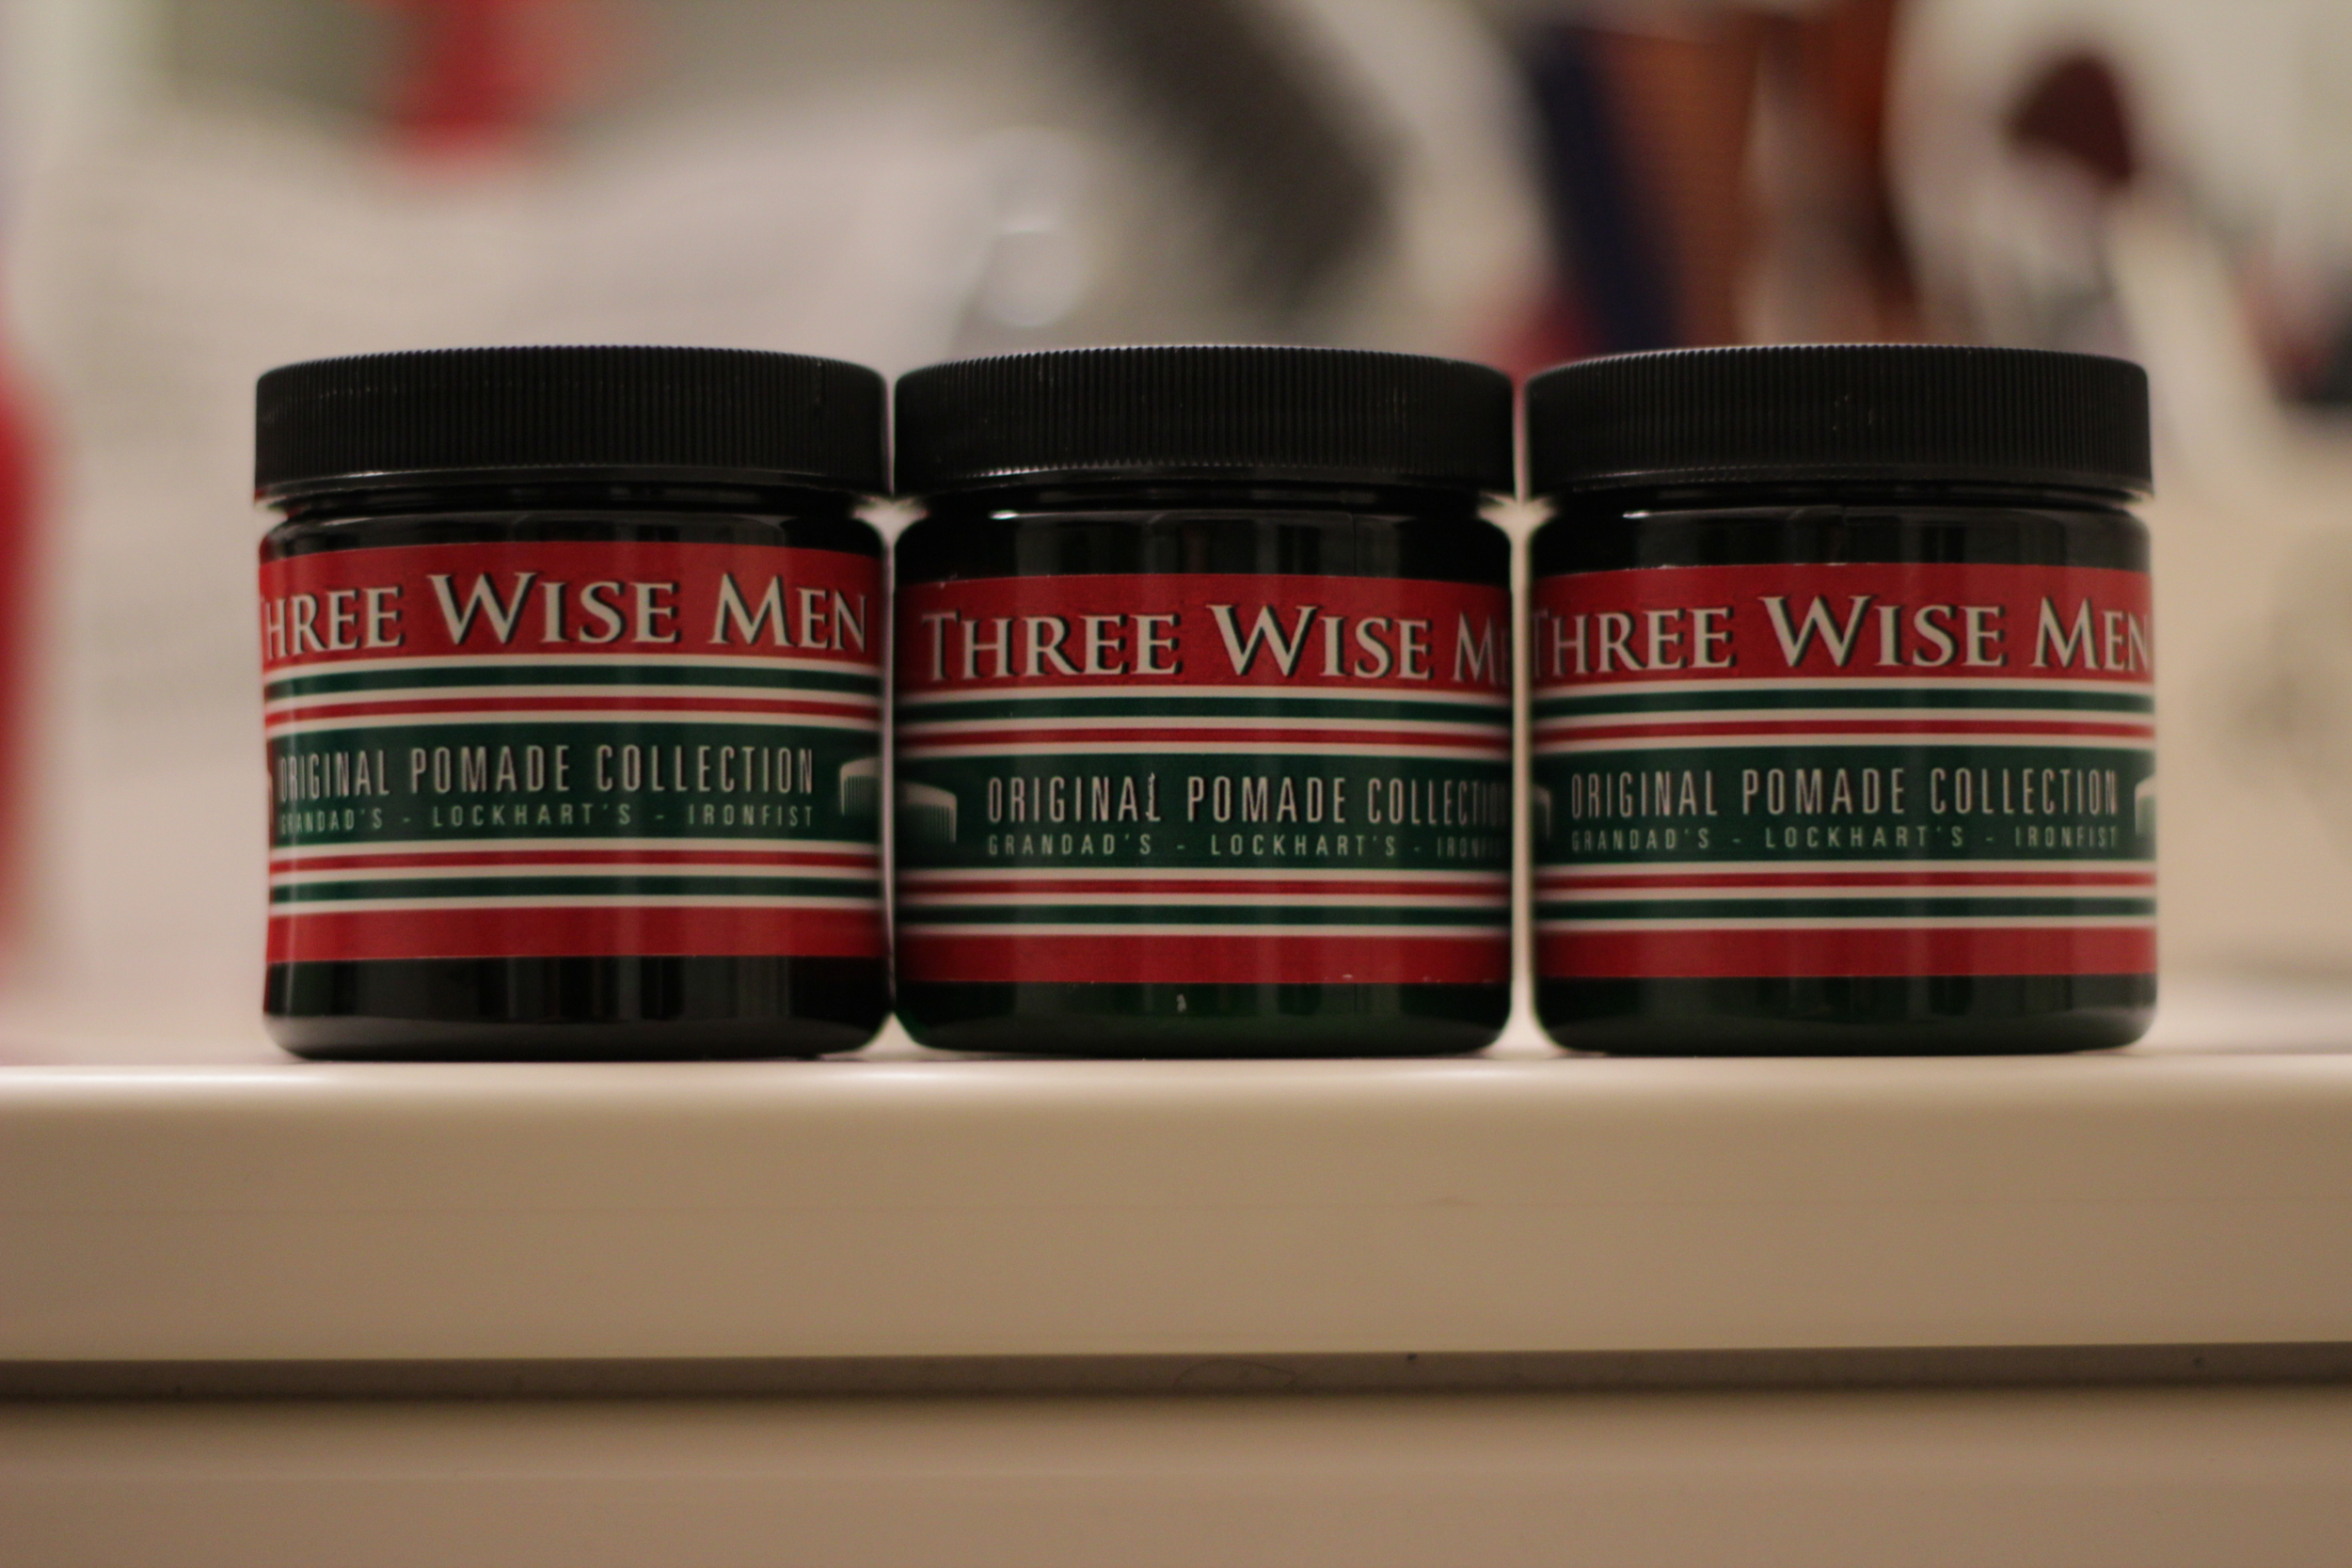 Three Wise Men Ironfist Lightweight Pomade jar